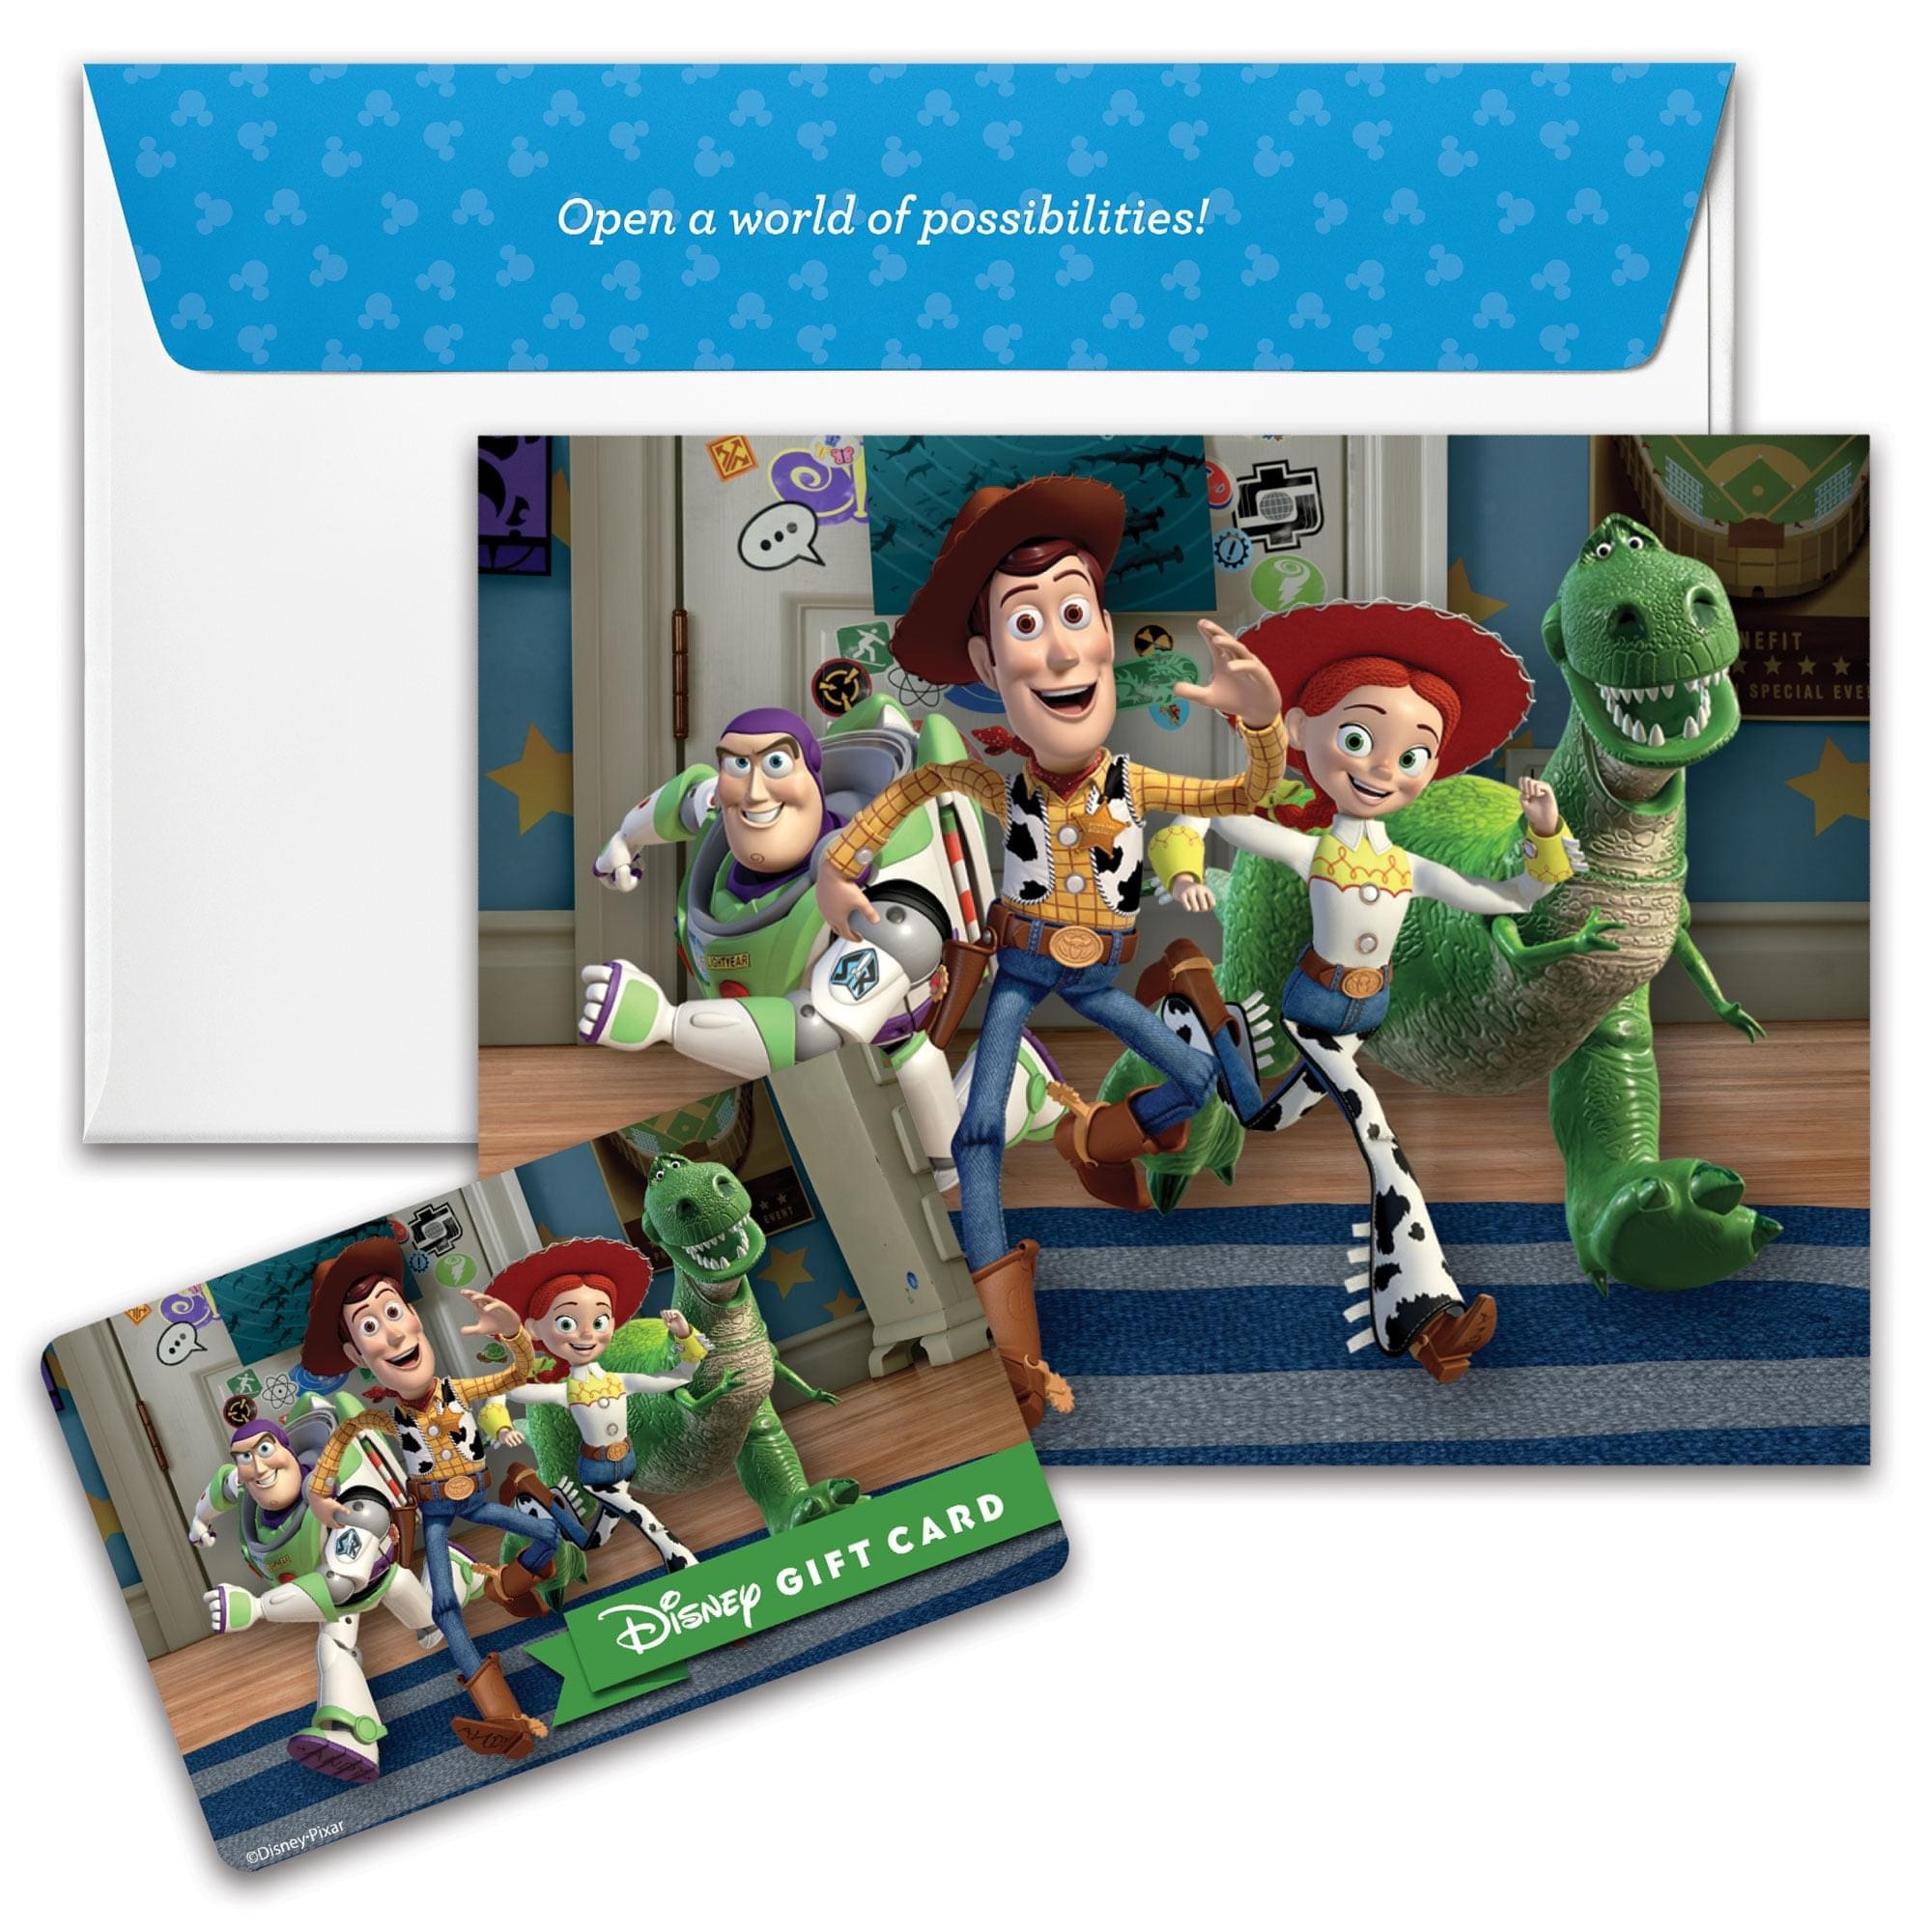 New Disney Gift Card Designs for Your Holiday Gift Giving from shopDisney! 5